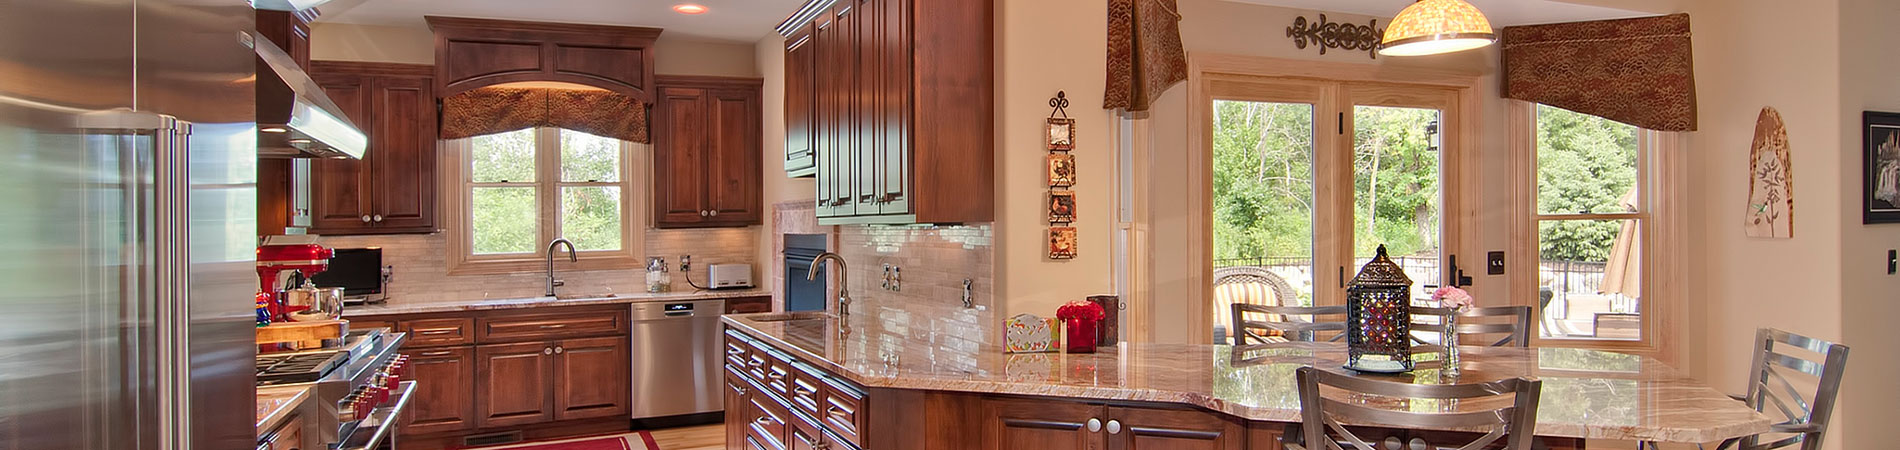 Services Custom Cabinets For Kitchen Bath Family Room And More Commercial Cabinet Design Installation Mcchesney Elk River Mn